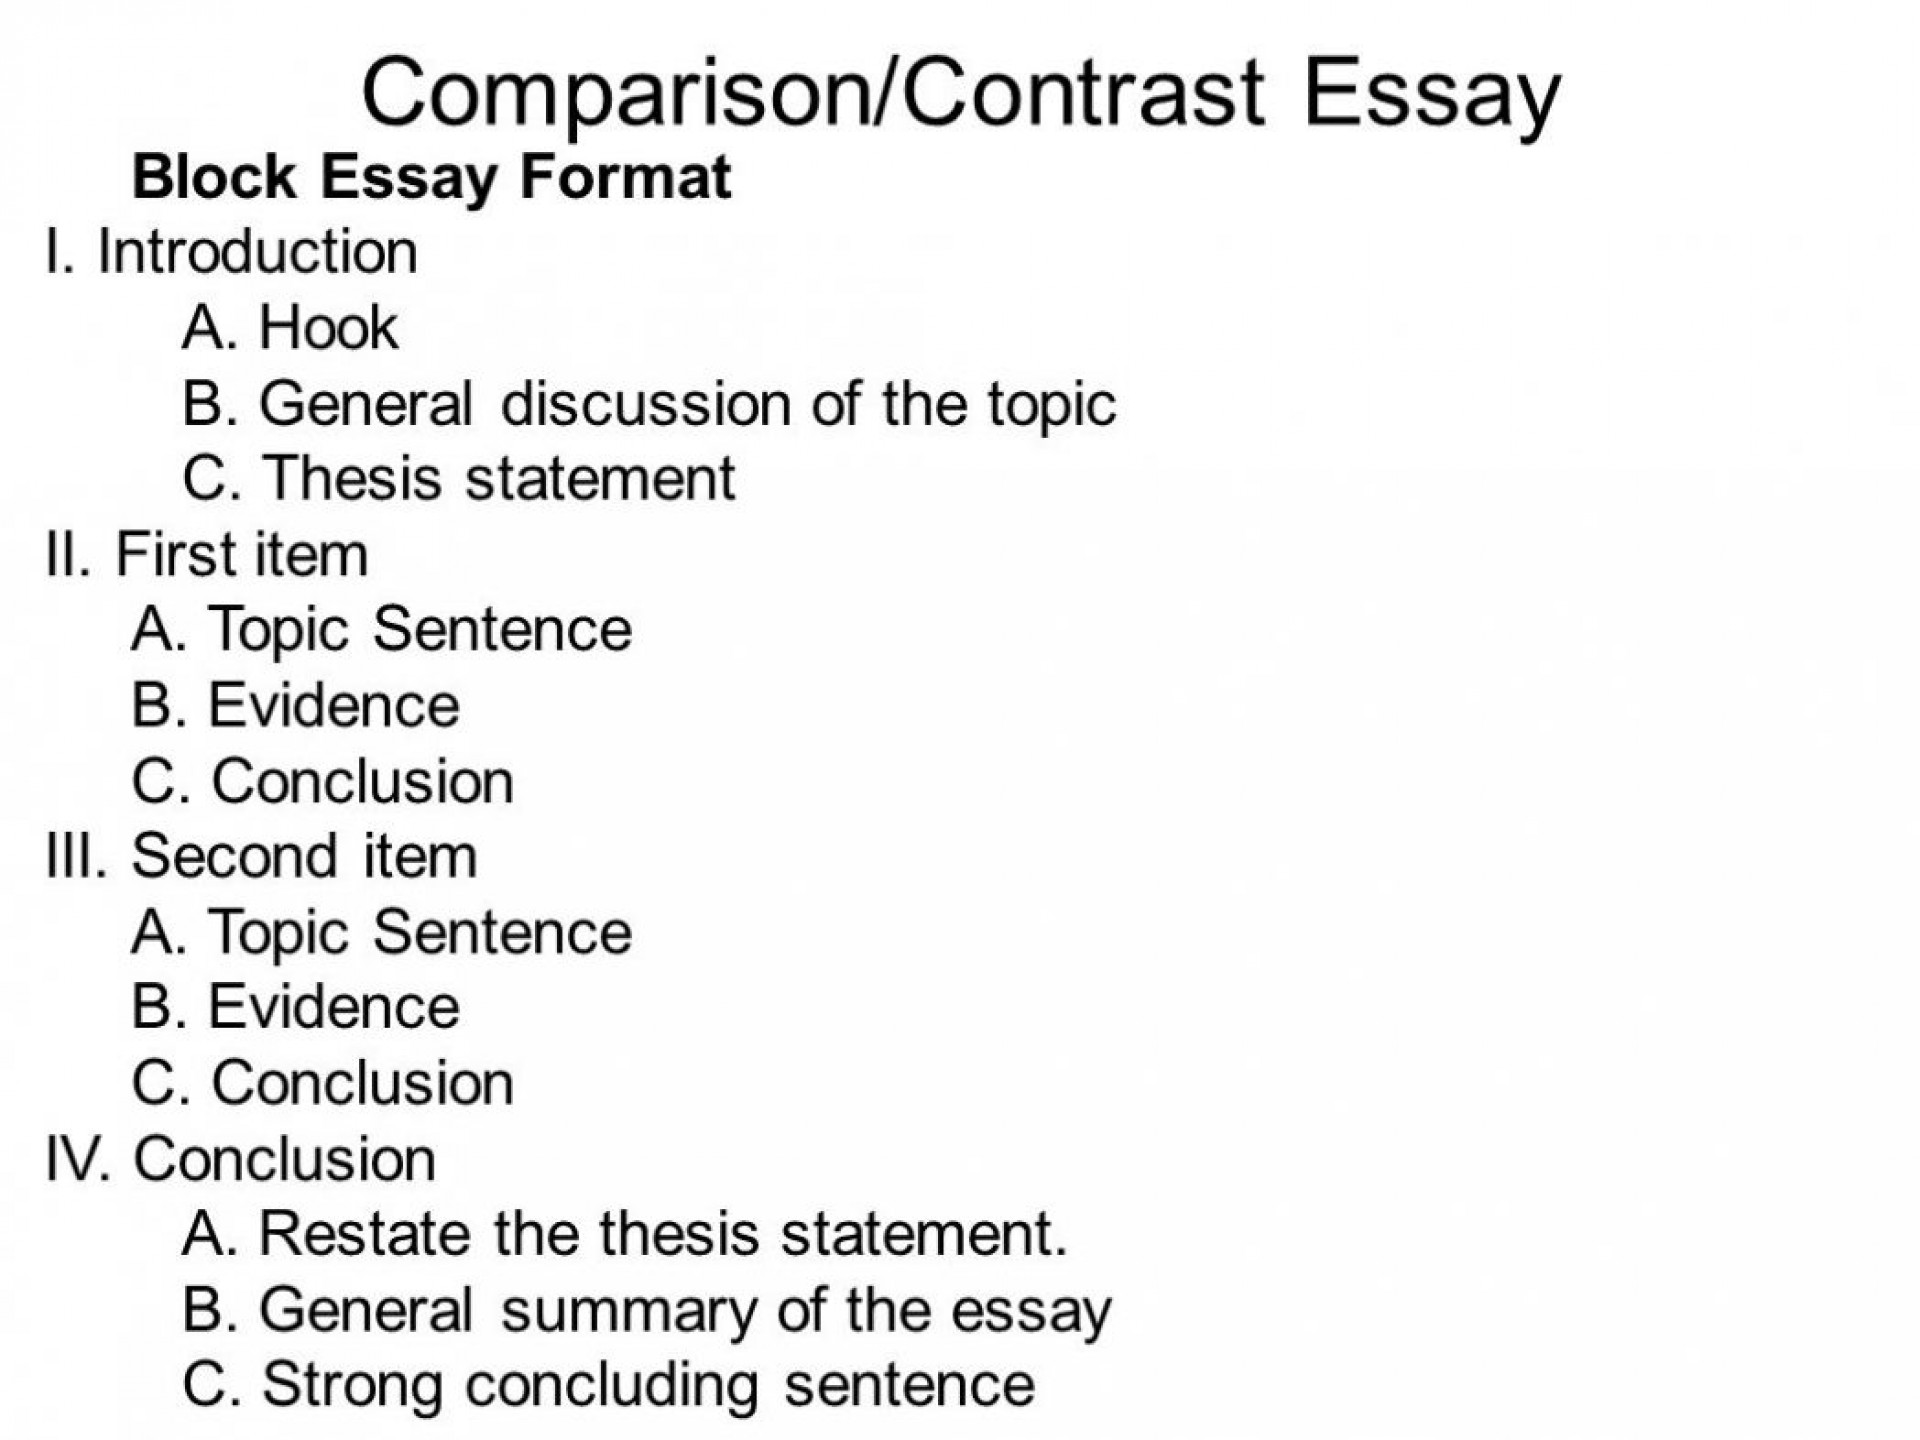 002 What Are Good Compare And Contrast Essay Topics Argumentative About Youth Sports Sli Dealing With Medicine 1048x786 Exceptional For Elementary Students In The Medical Field 1920